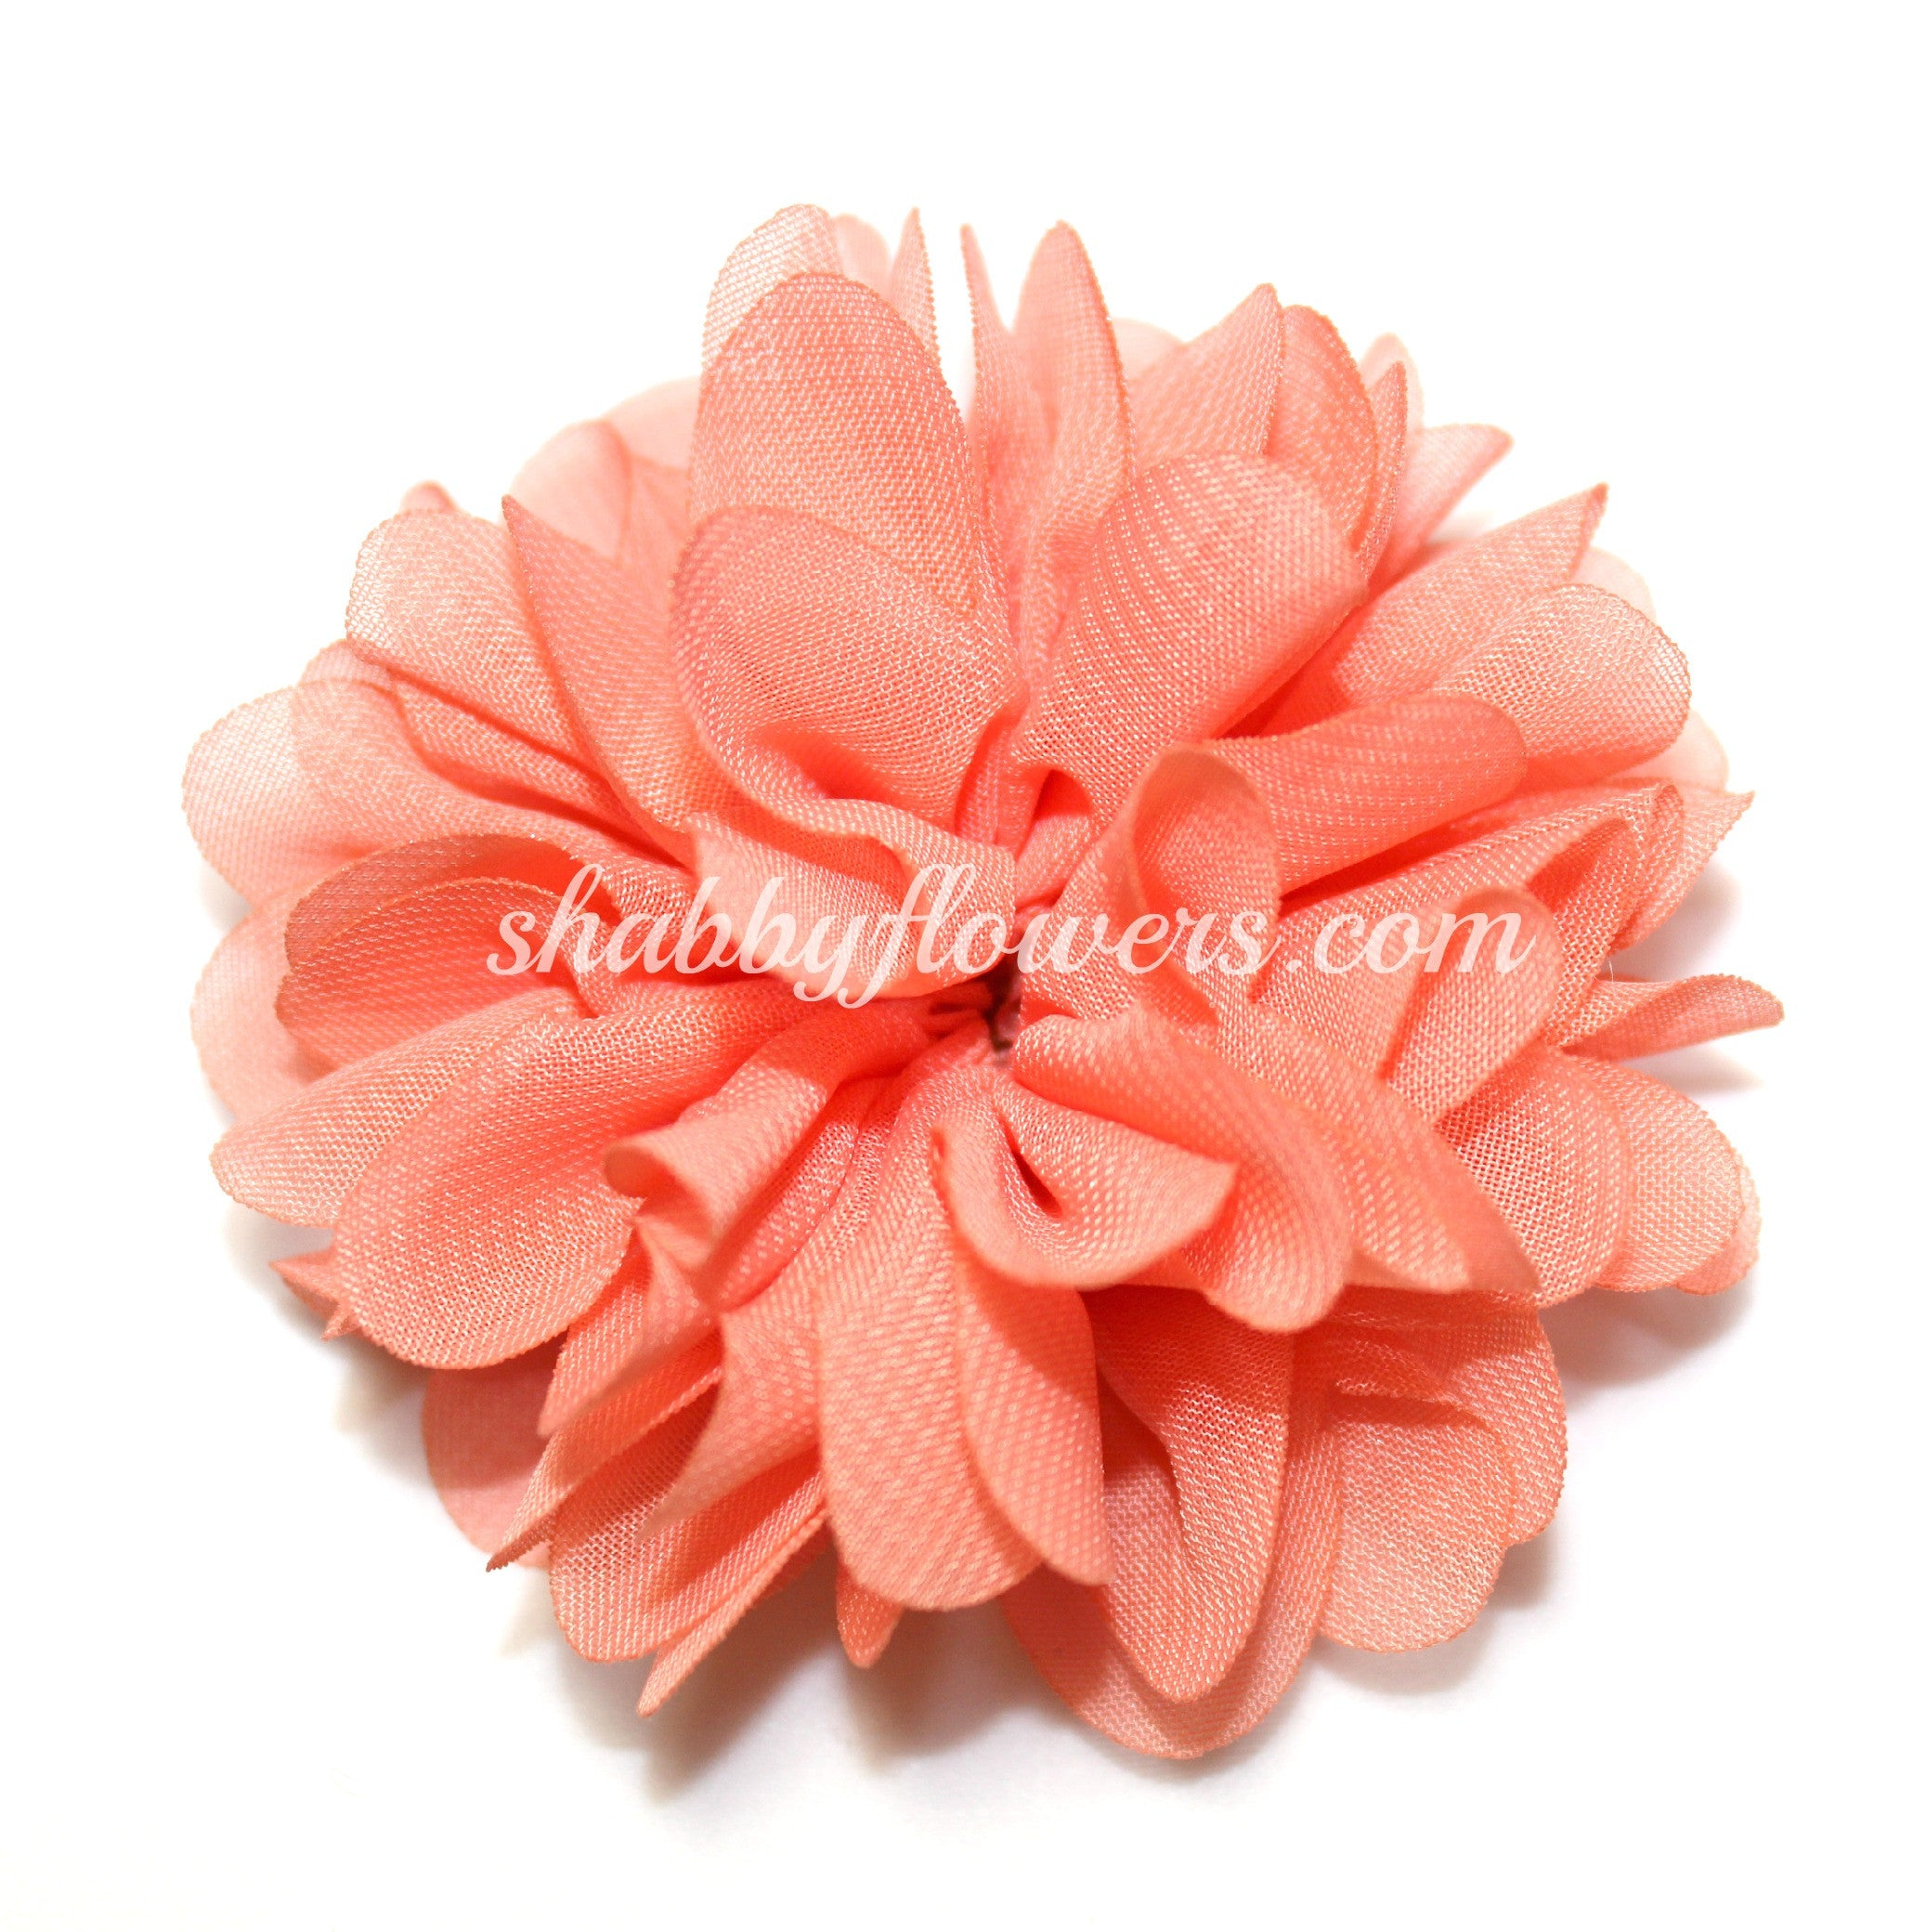 Scalloped Flower - Coral - shabbyflowers.com